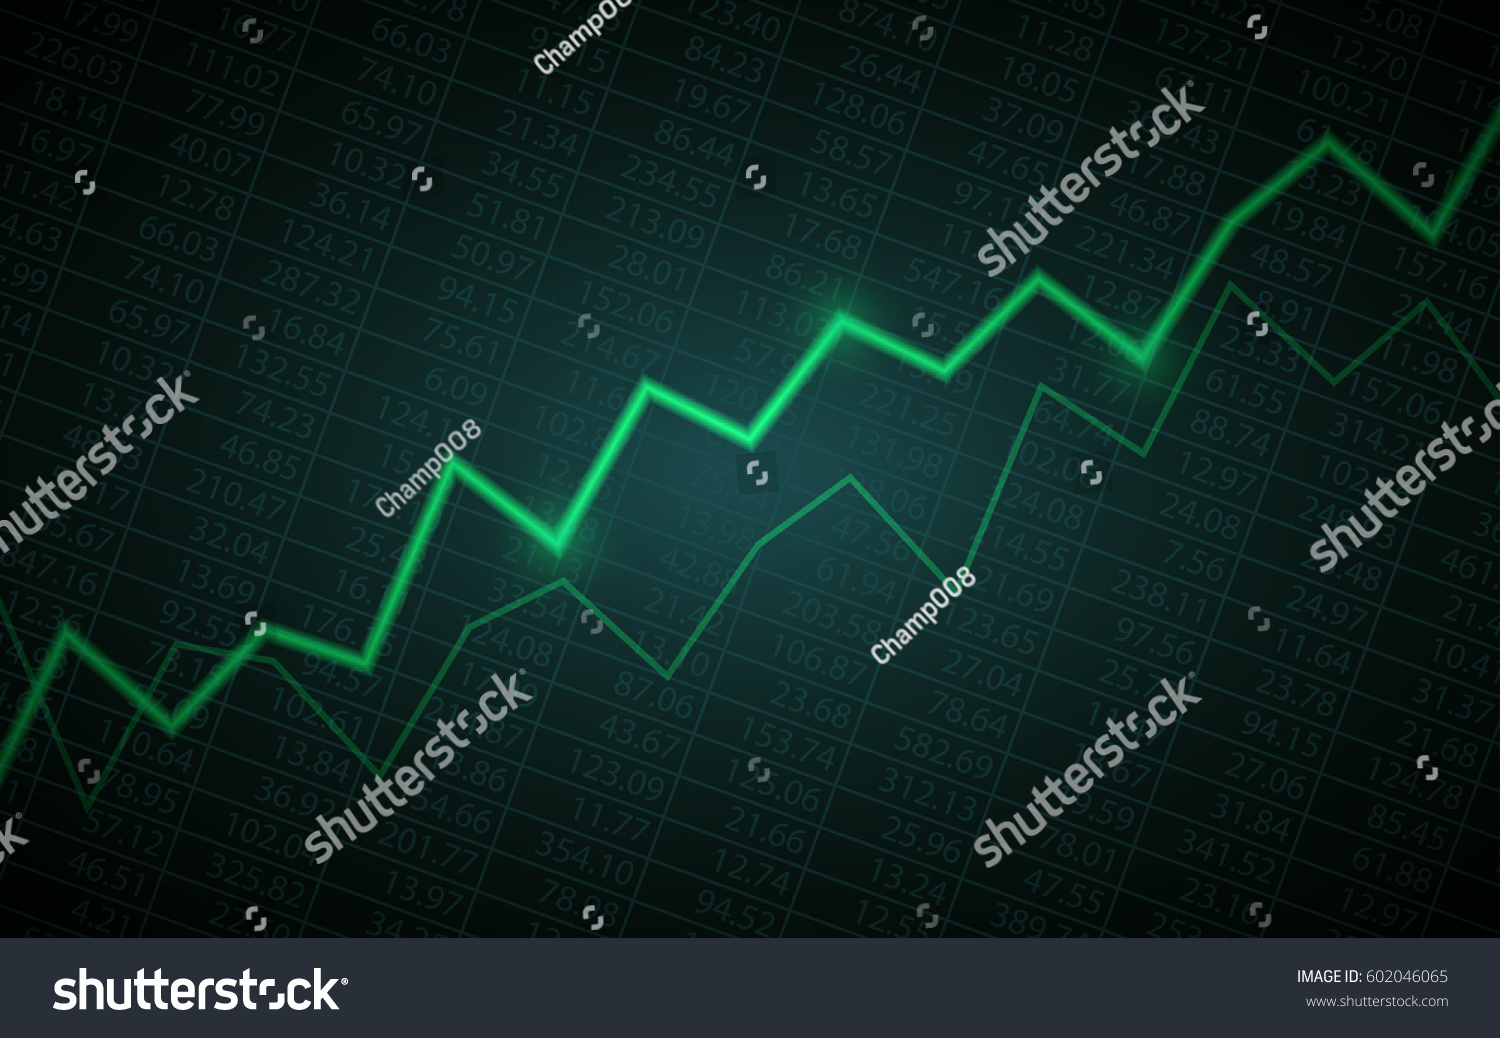 Abstract Financial Chart Uptrend Line Graph Stock Vector 602046065 ...